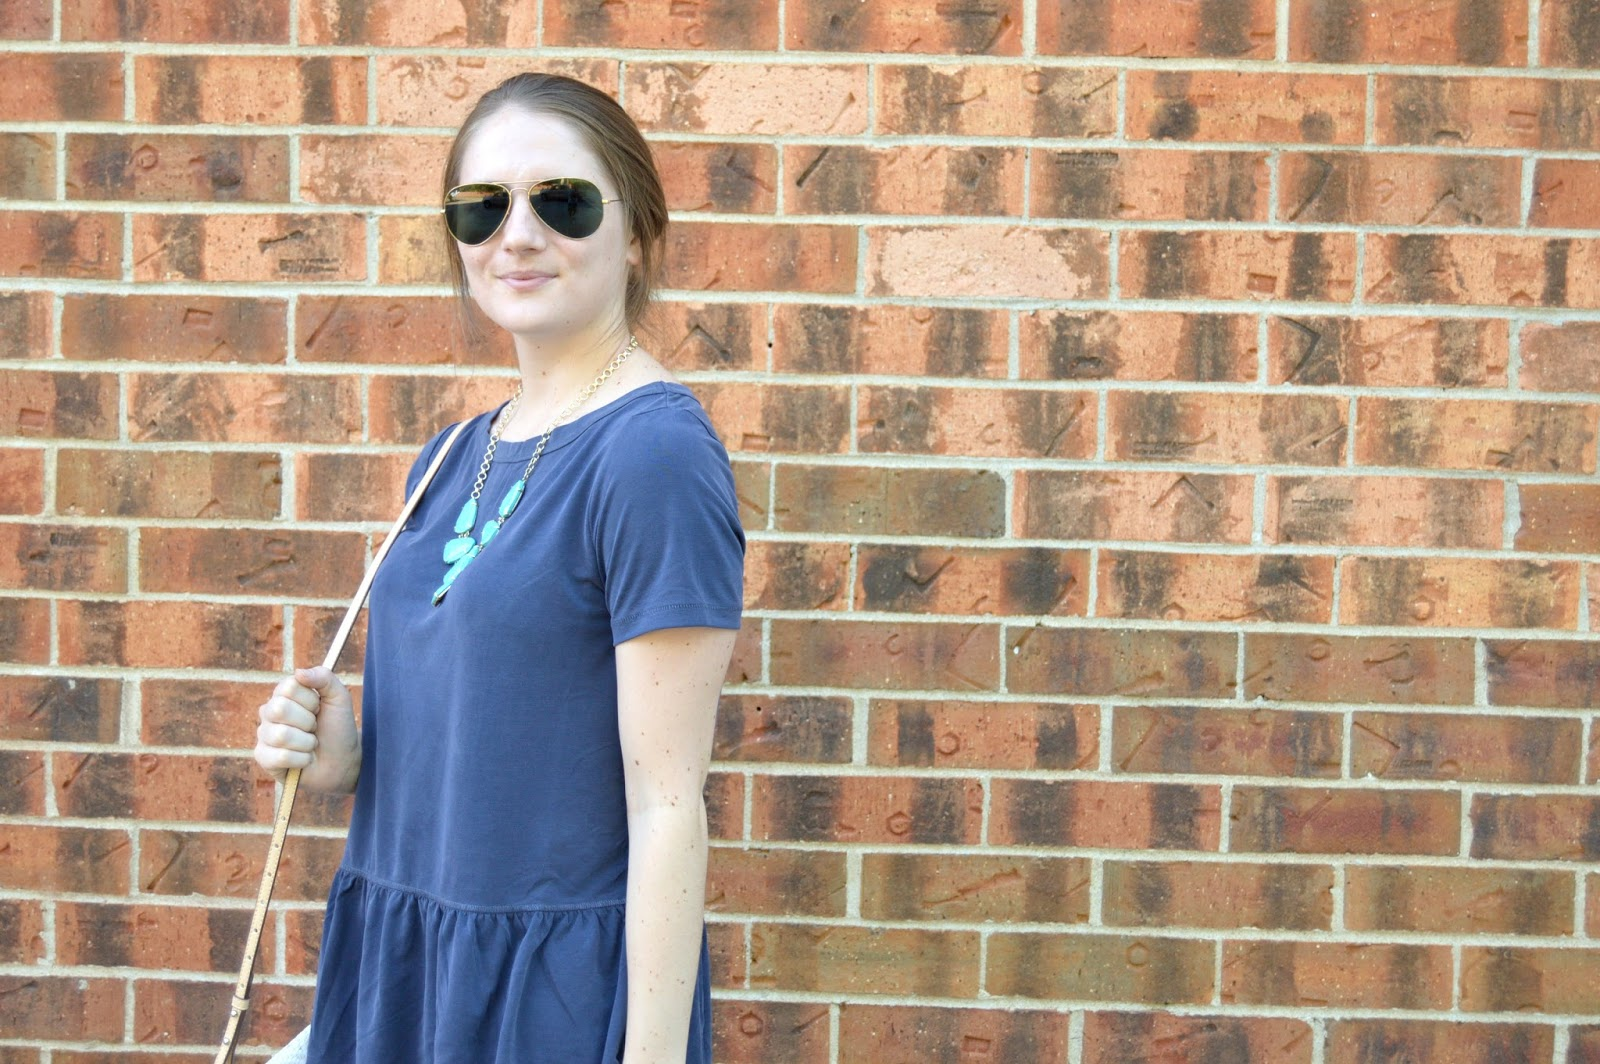 turquoise necklace with a navy shirt | what to wear this summer | summer outfit ideas | summer lookbook | summer street style | what to wear this summer | a memory of us | kansas city fashion blog